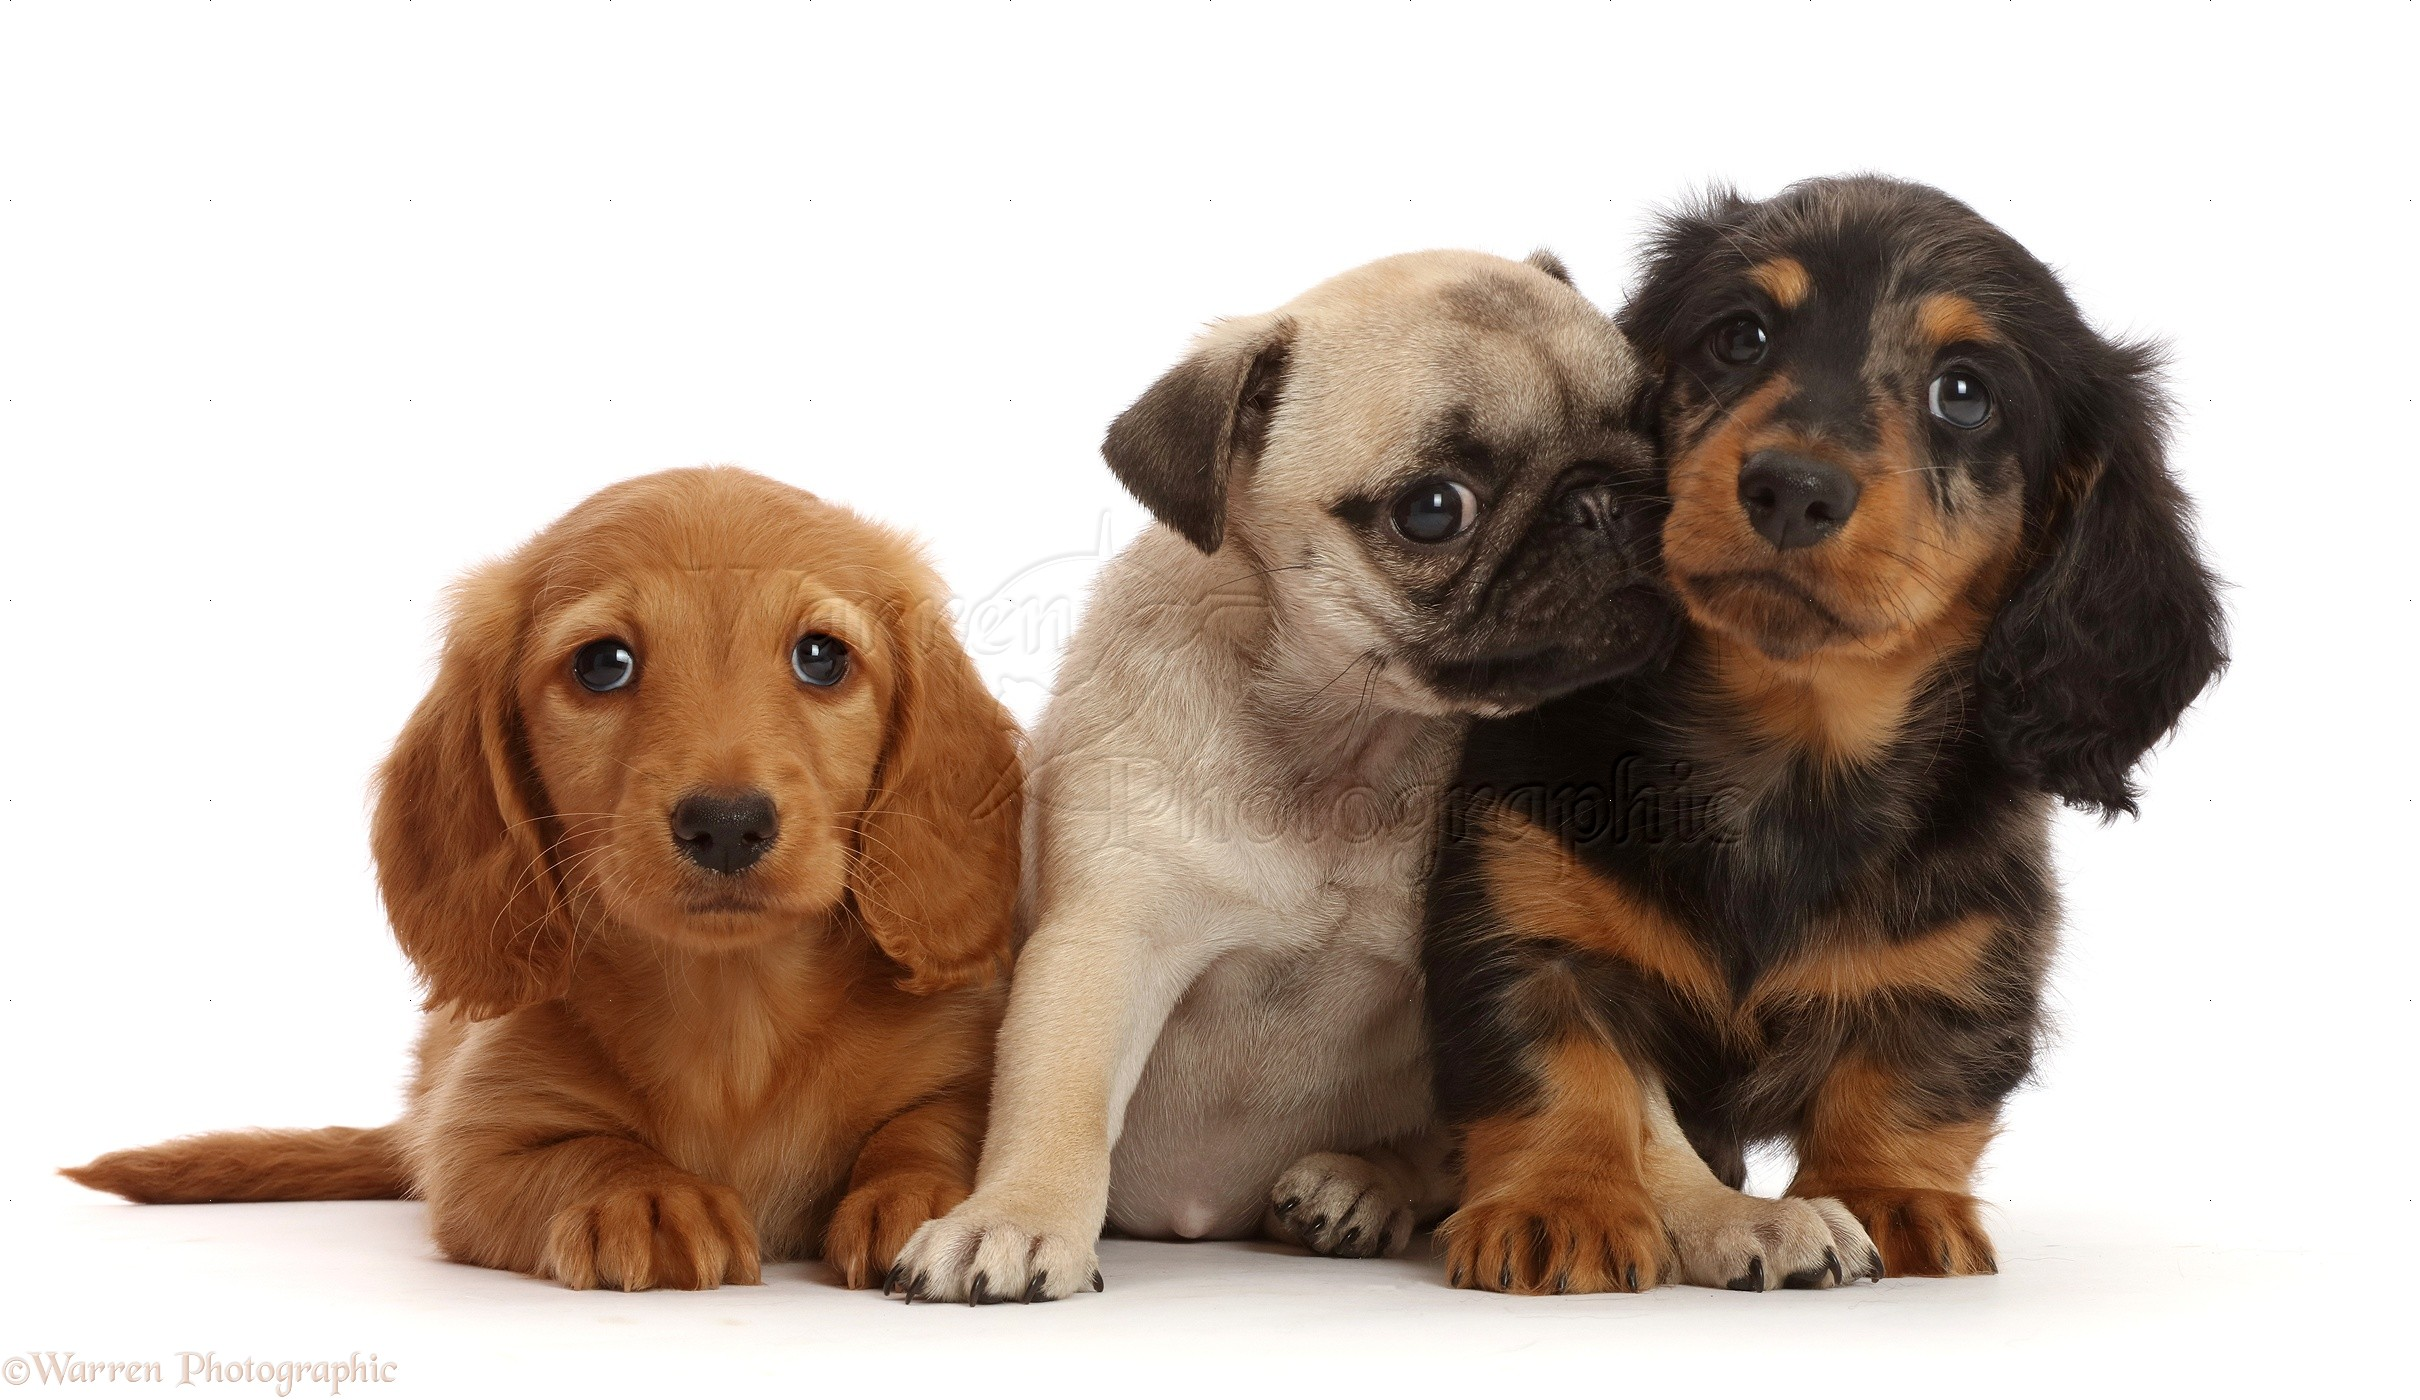 Dogs Dachshund Puppy And Pug Puppy Photo Wp48348